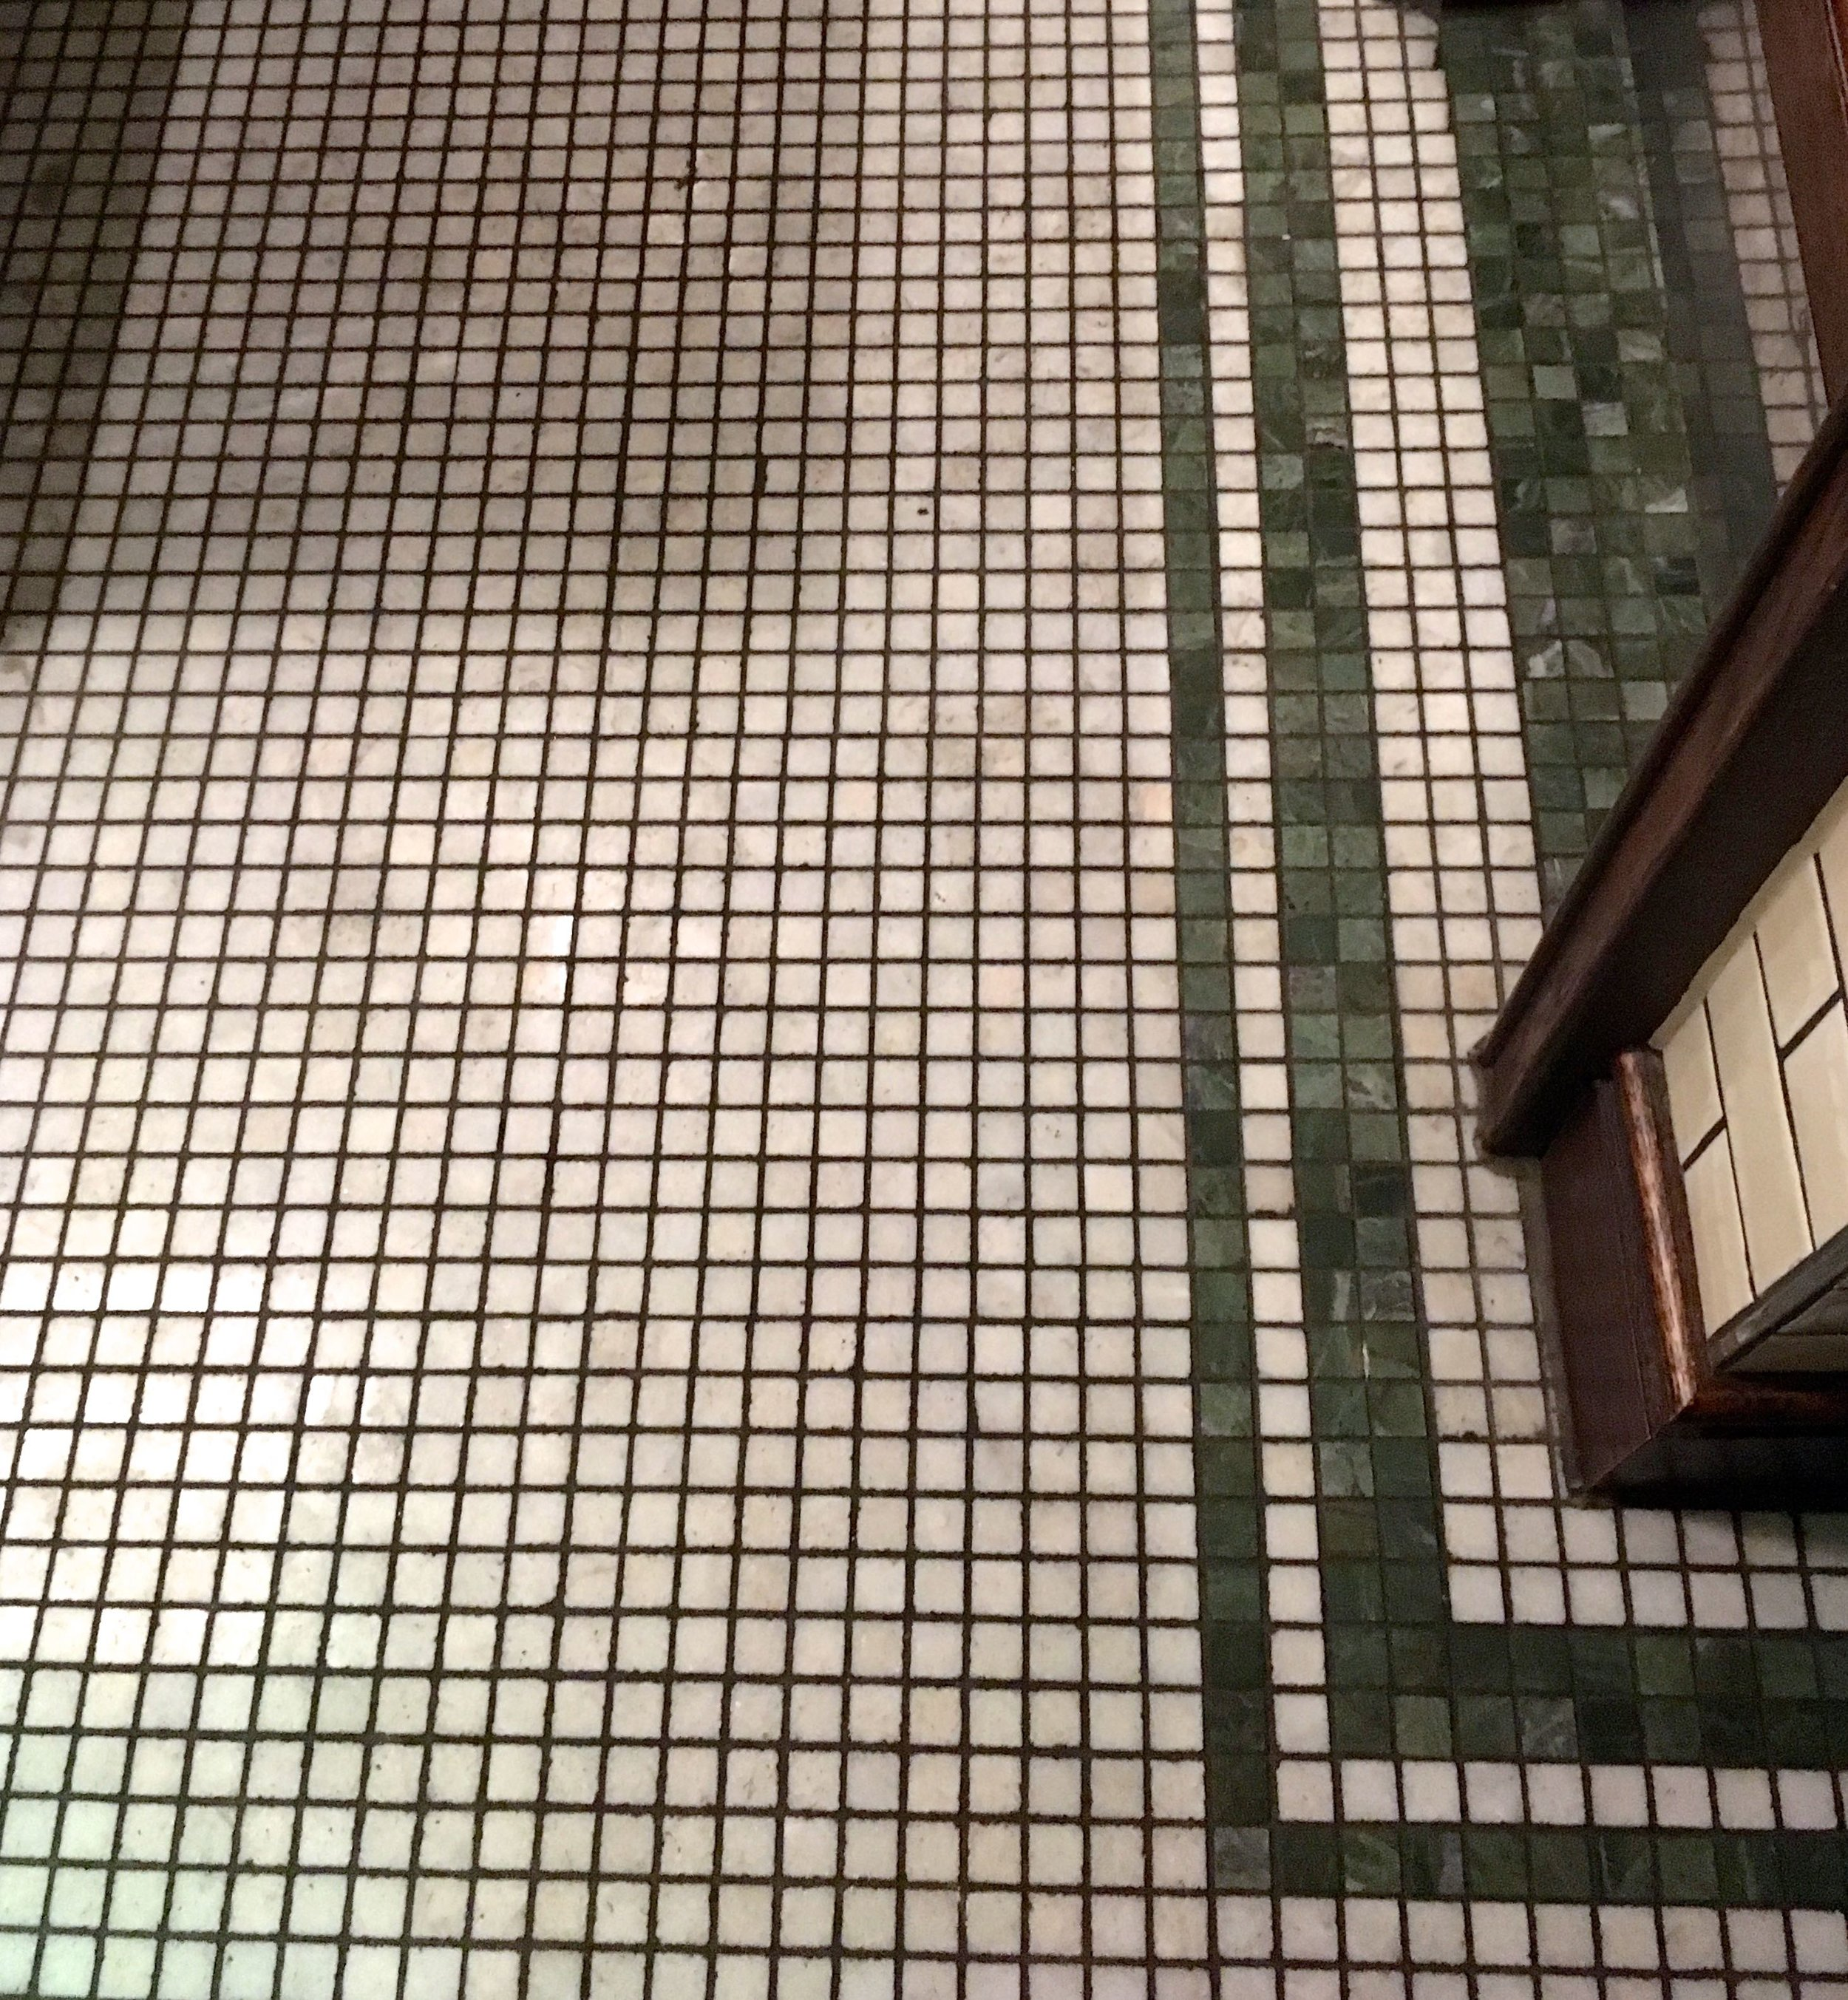 A mosaic tiled floor in the ladies at les deux salons in central london